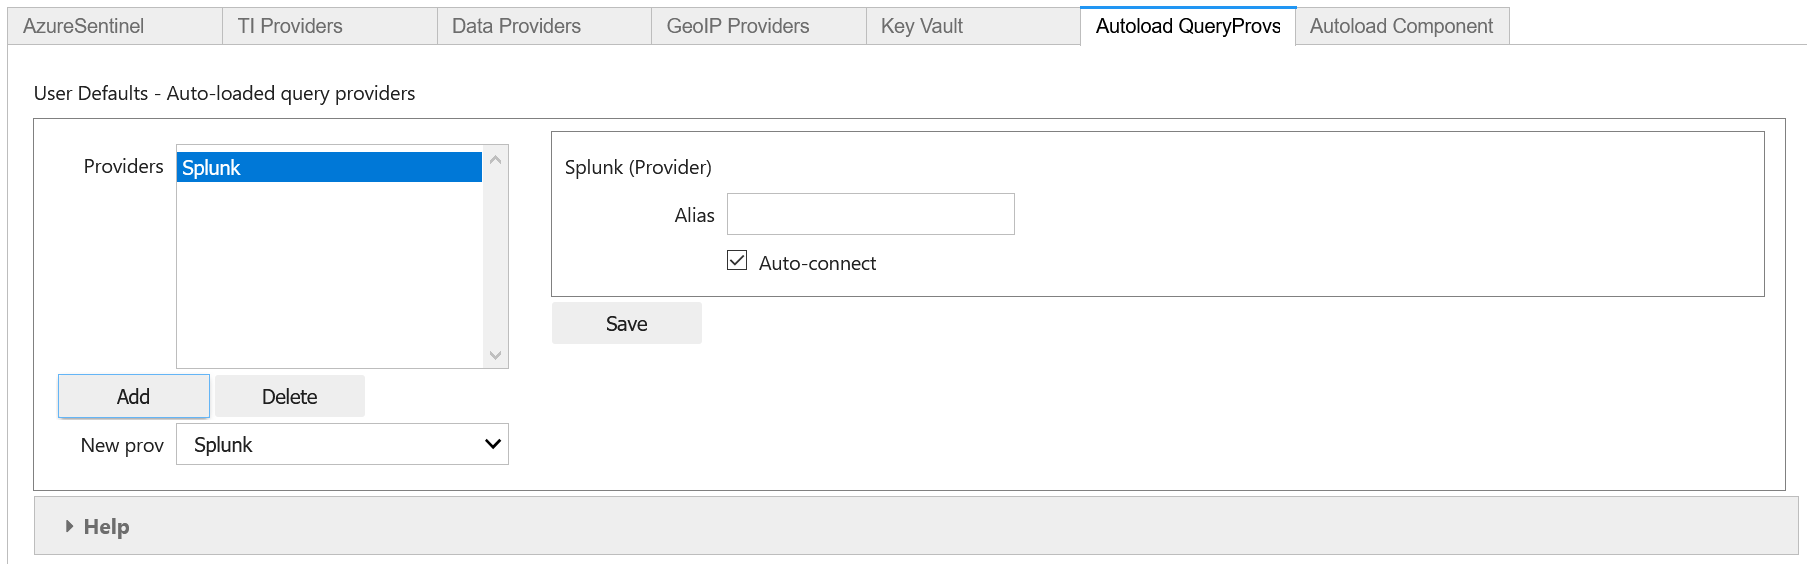 Settings editor showing adding the Splunk data connector to the auto-load list.